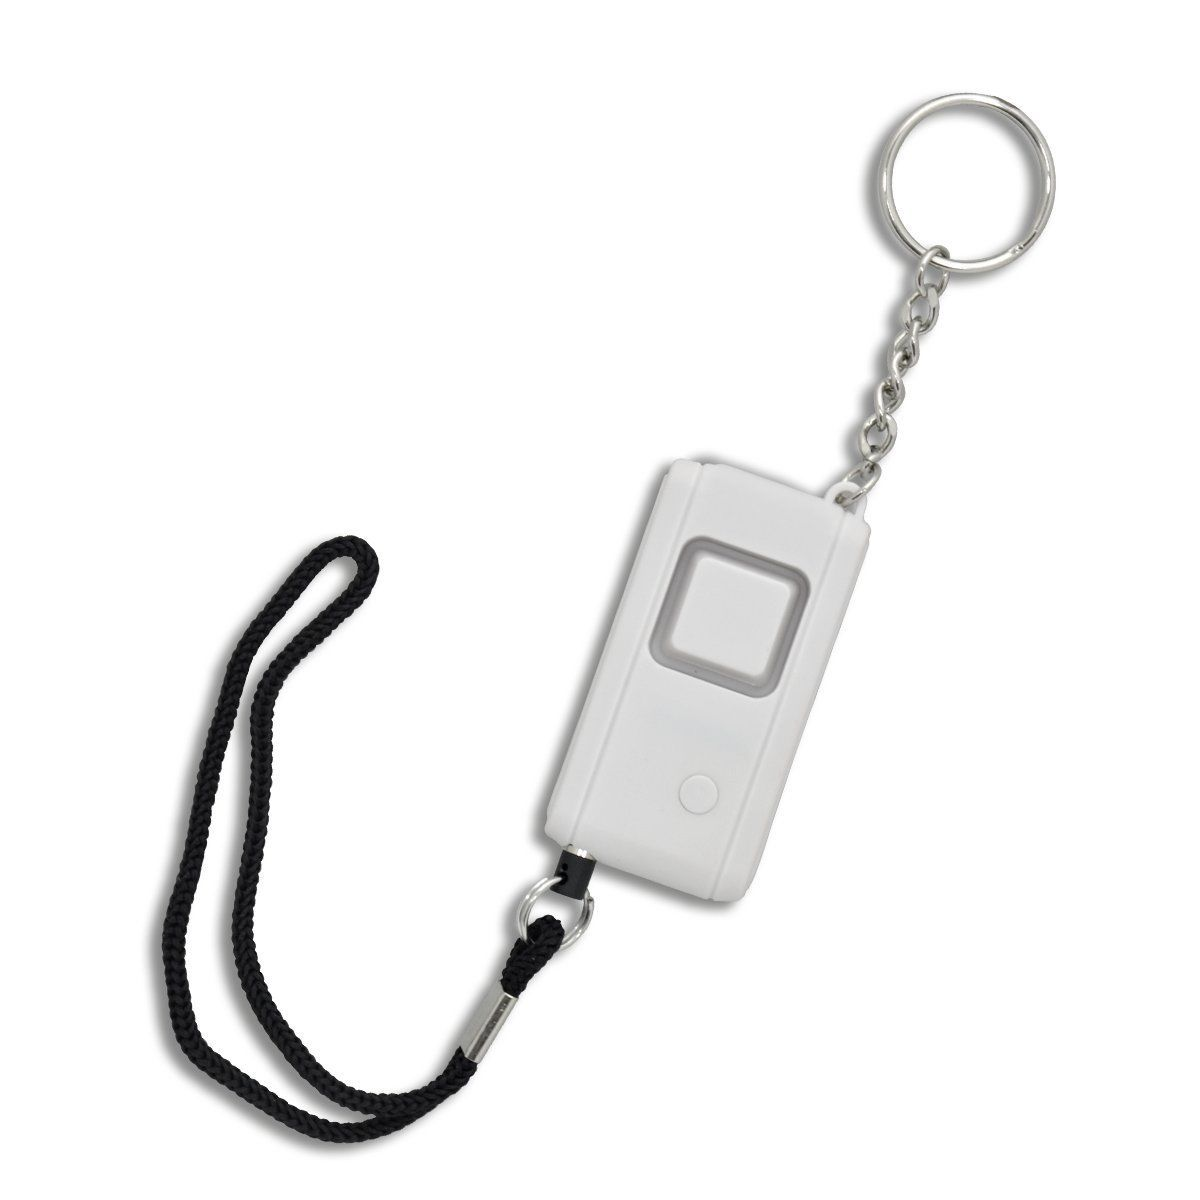 Personal Security Keychain Alarm - Main